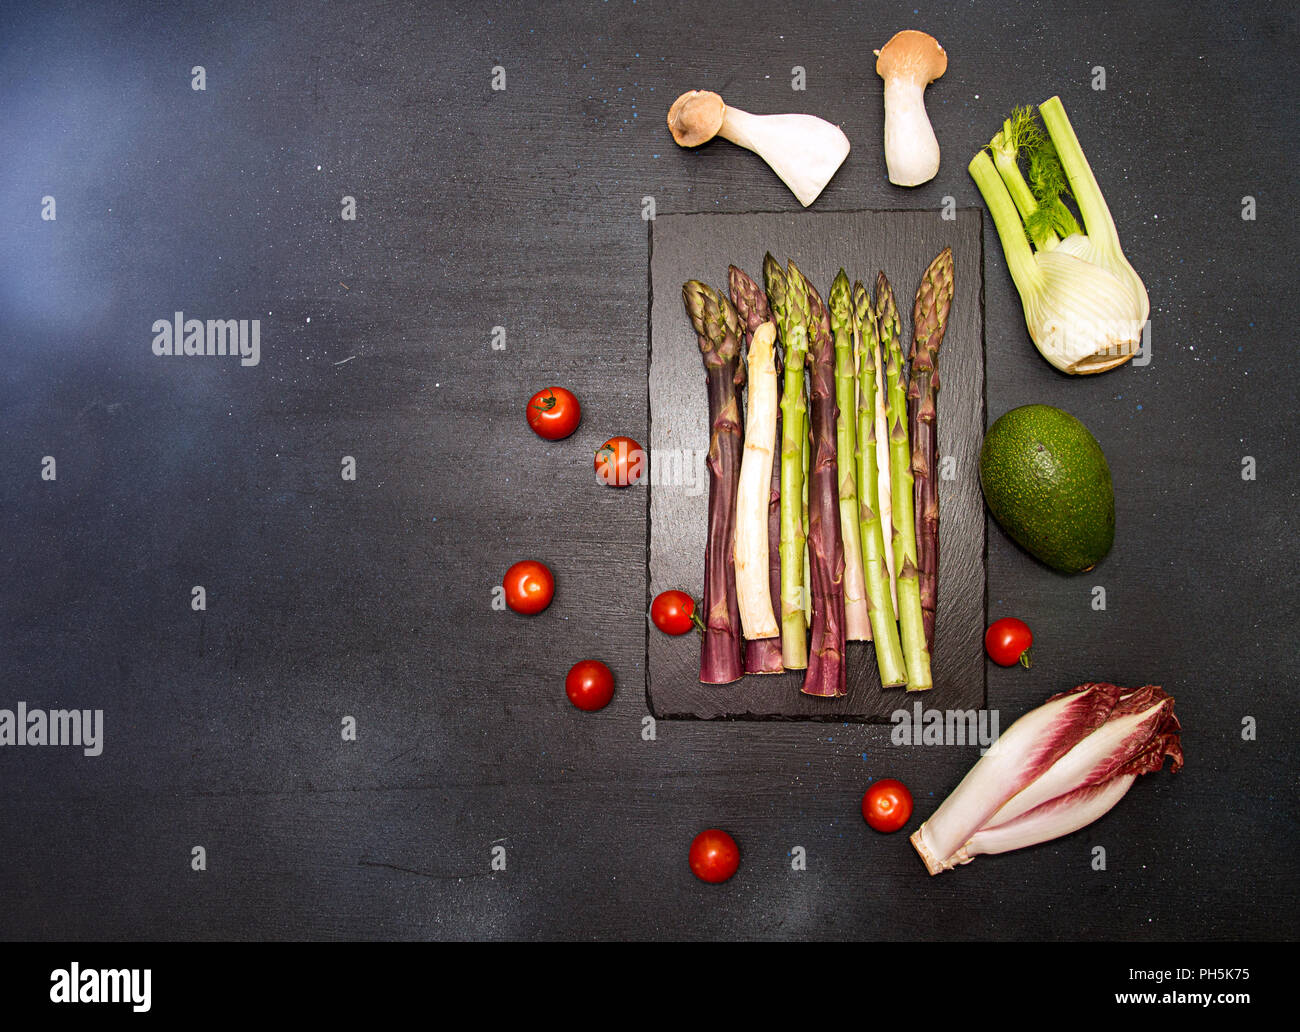 Ingredients for preparing healthy meal. Cherry tomato, asparagus, cherry tomatoes, chicory, fennel, avocado, oyster mushrooms over on black background Stock Photo